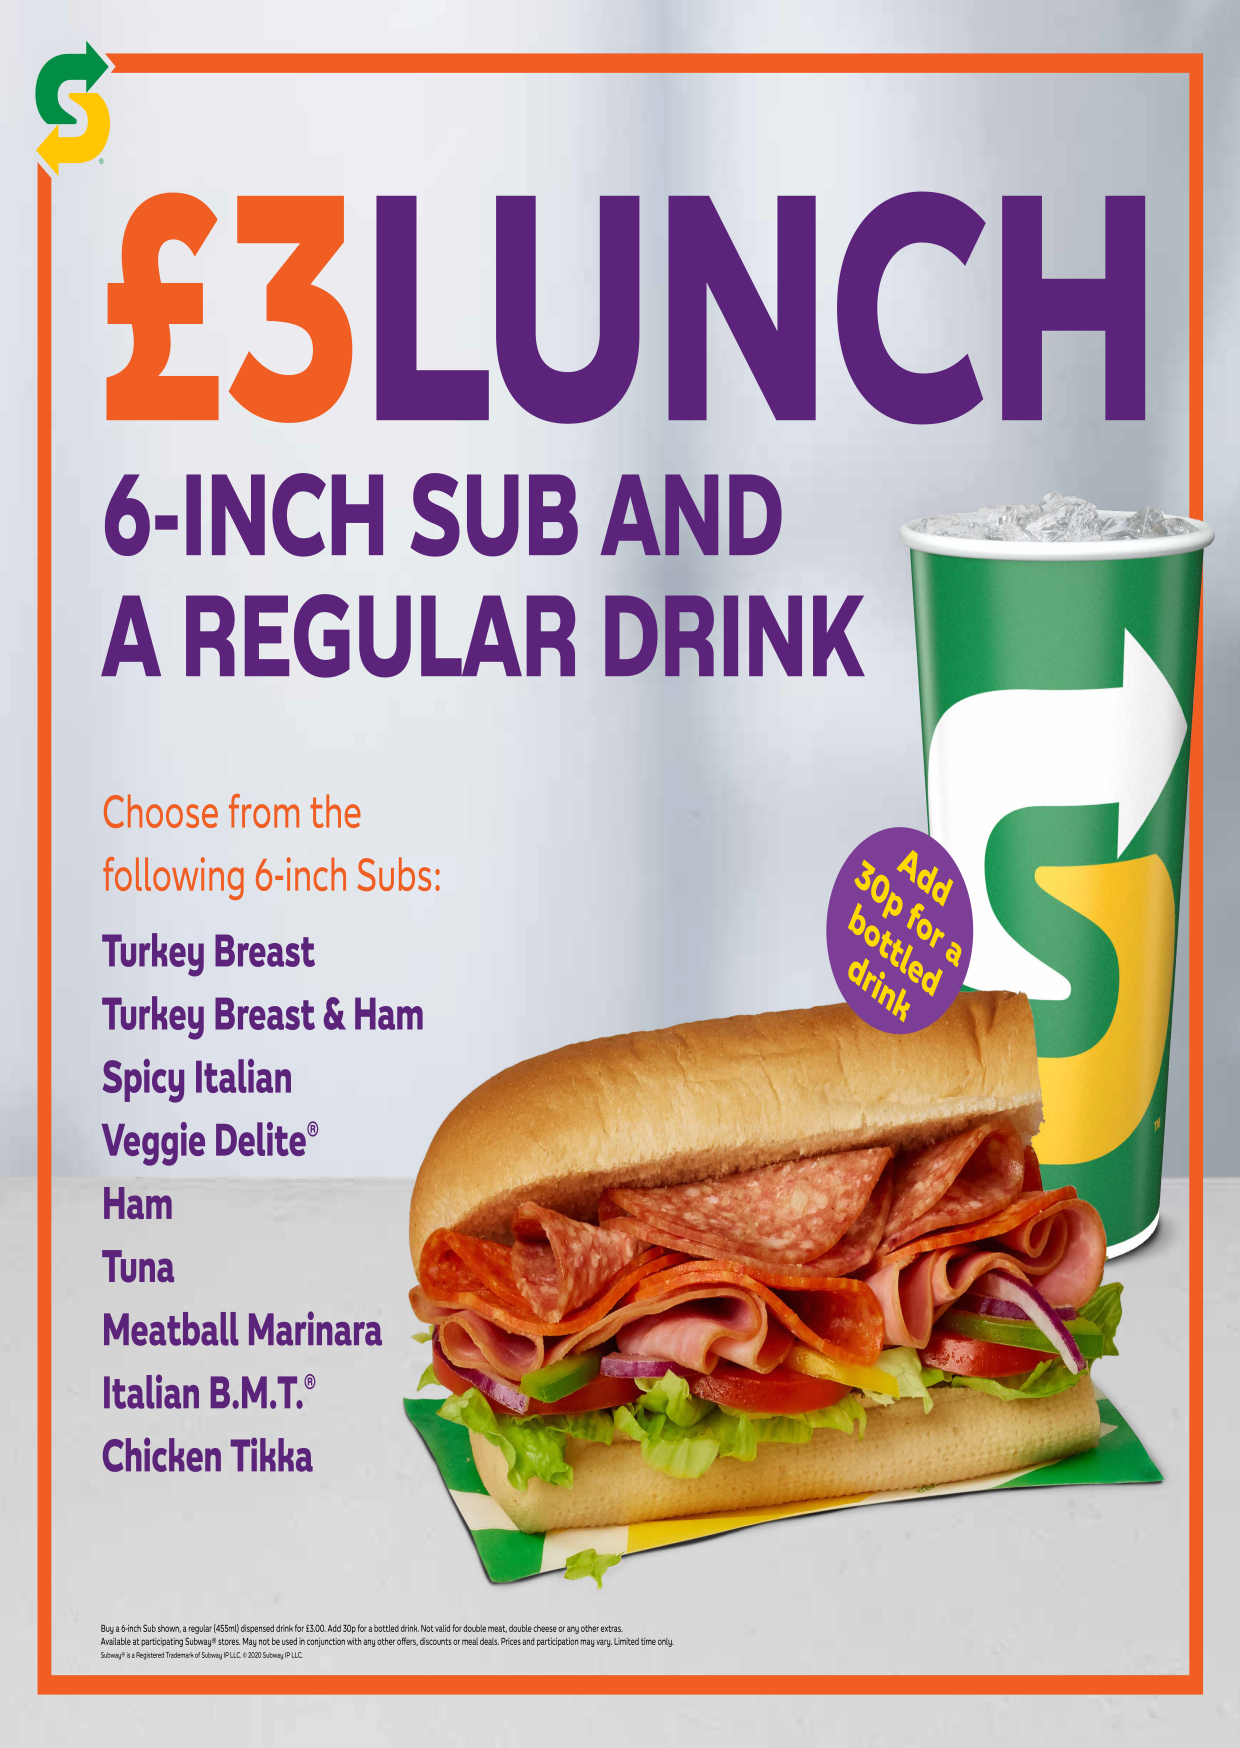 Subway meal deal for £3